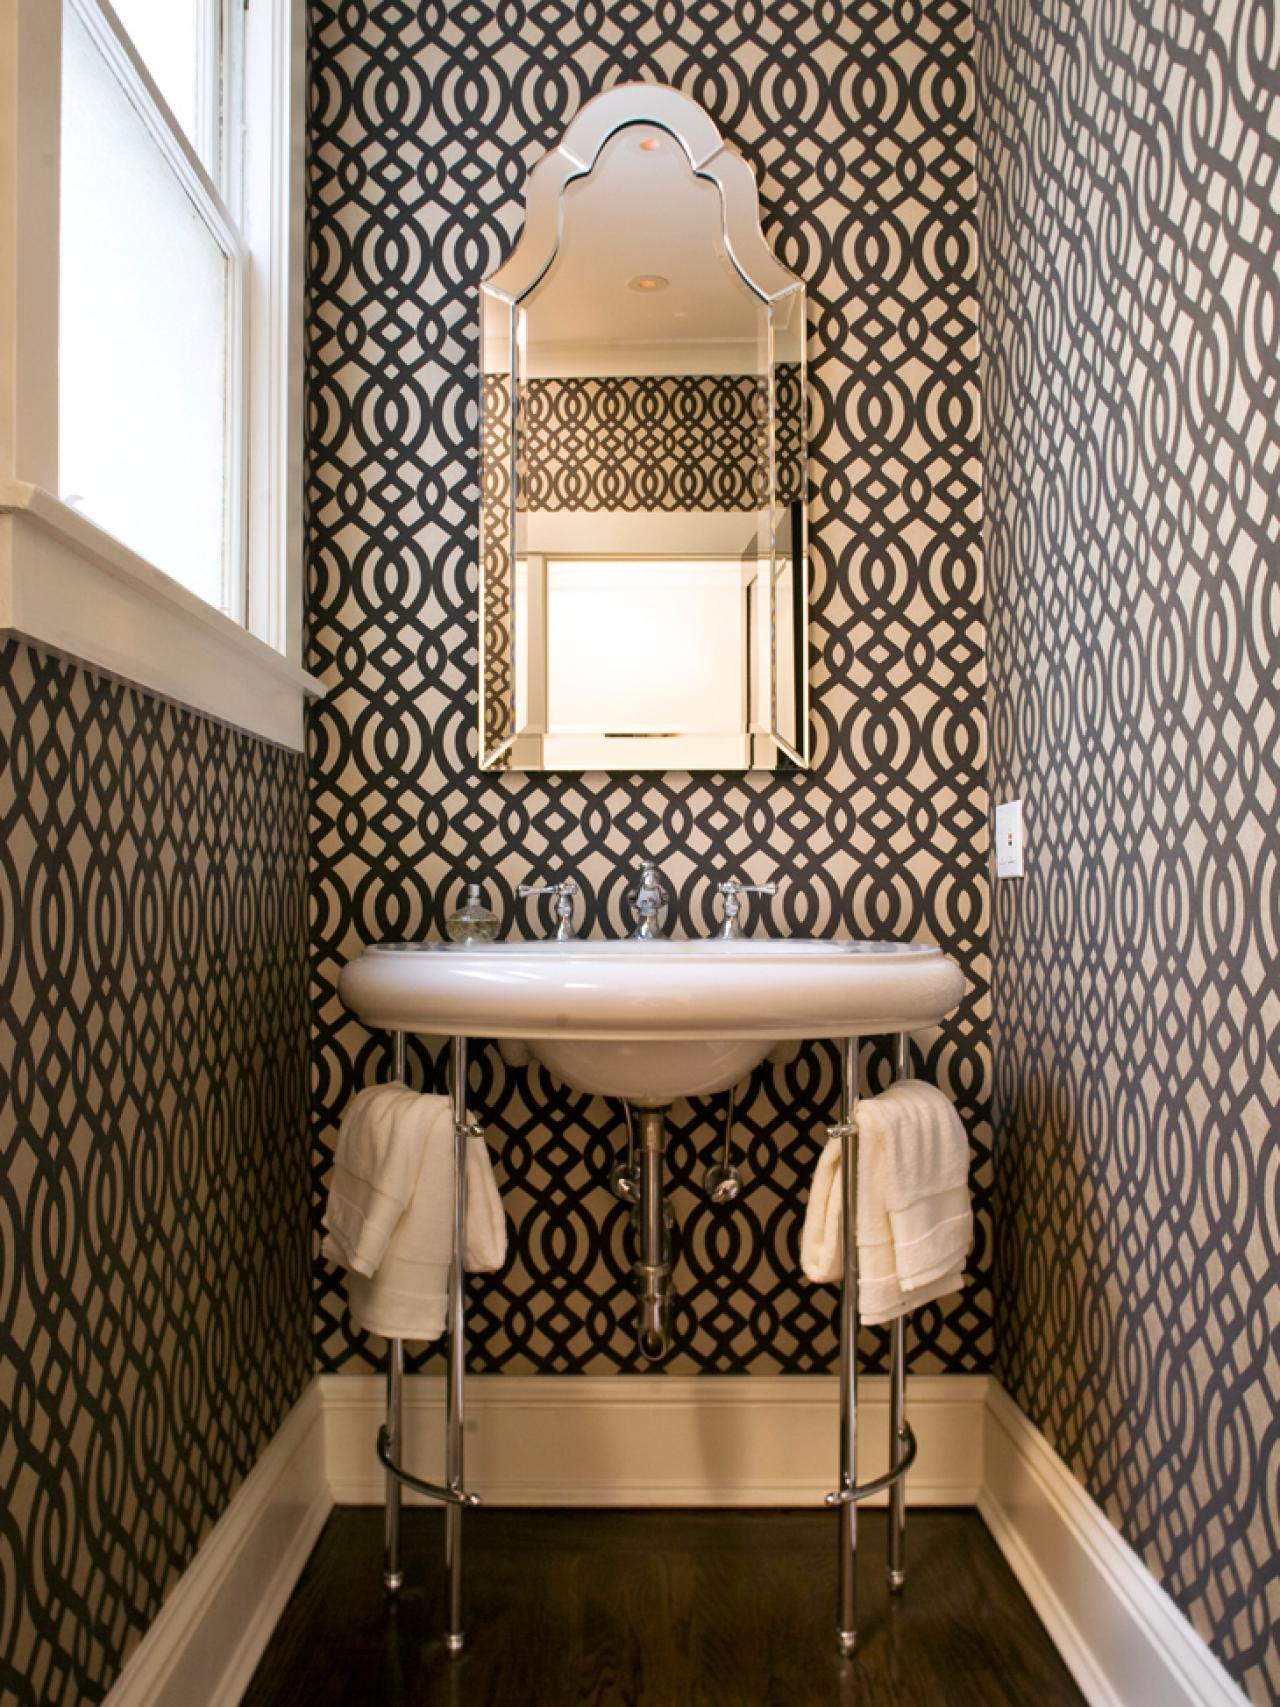 DP_Jennifer-Jones-contemporary-black-white-powder-room_s3x4.jpg.rend.hgtvcom.1280.1707